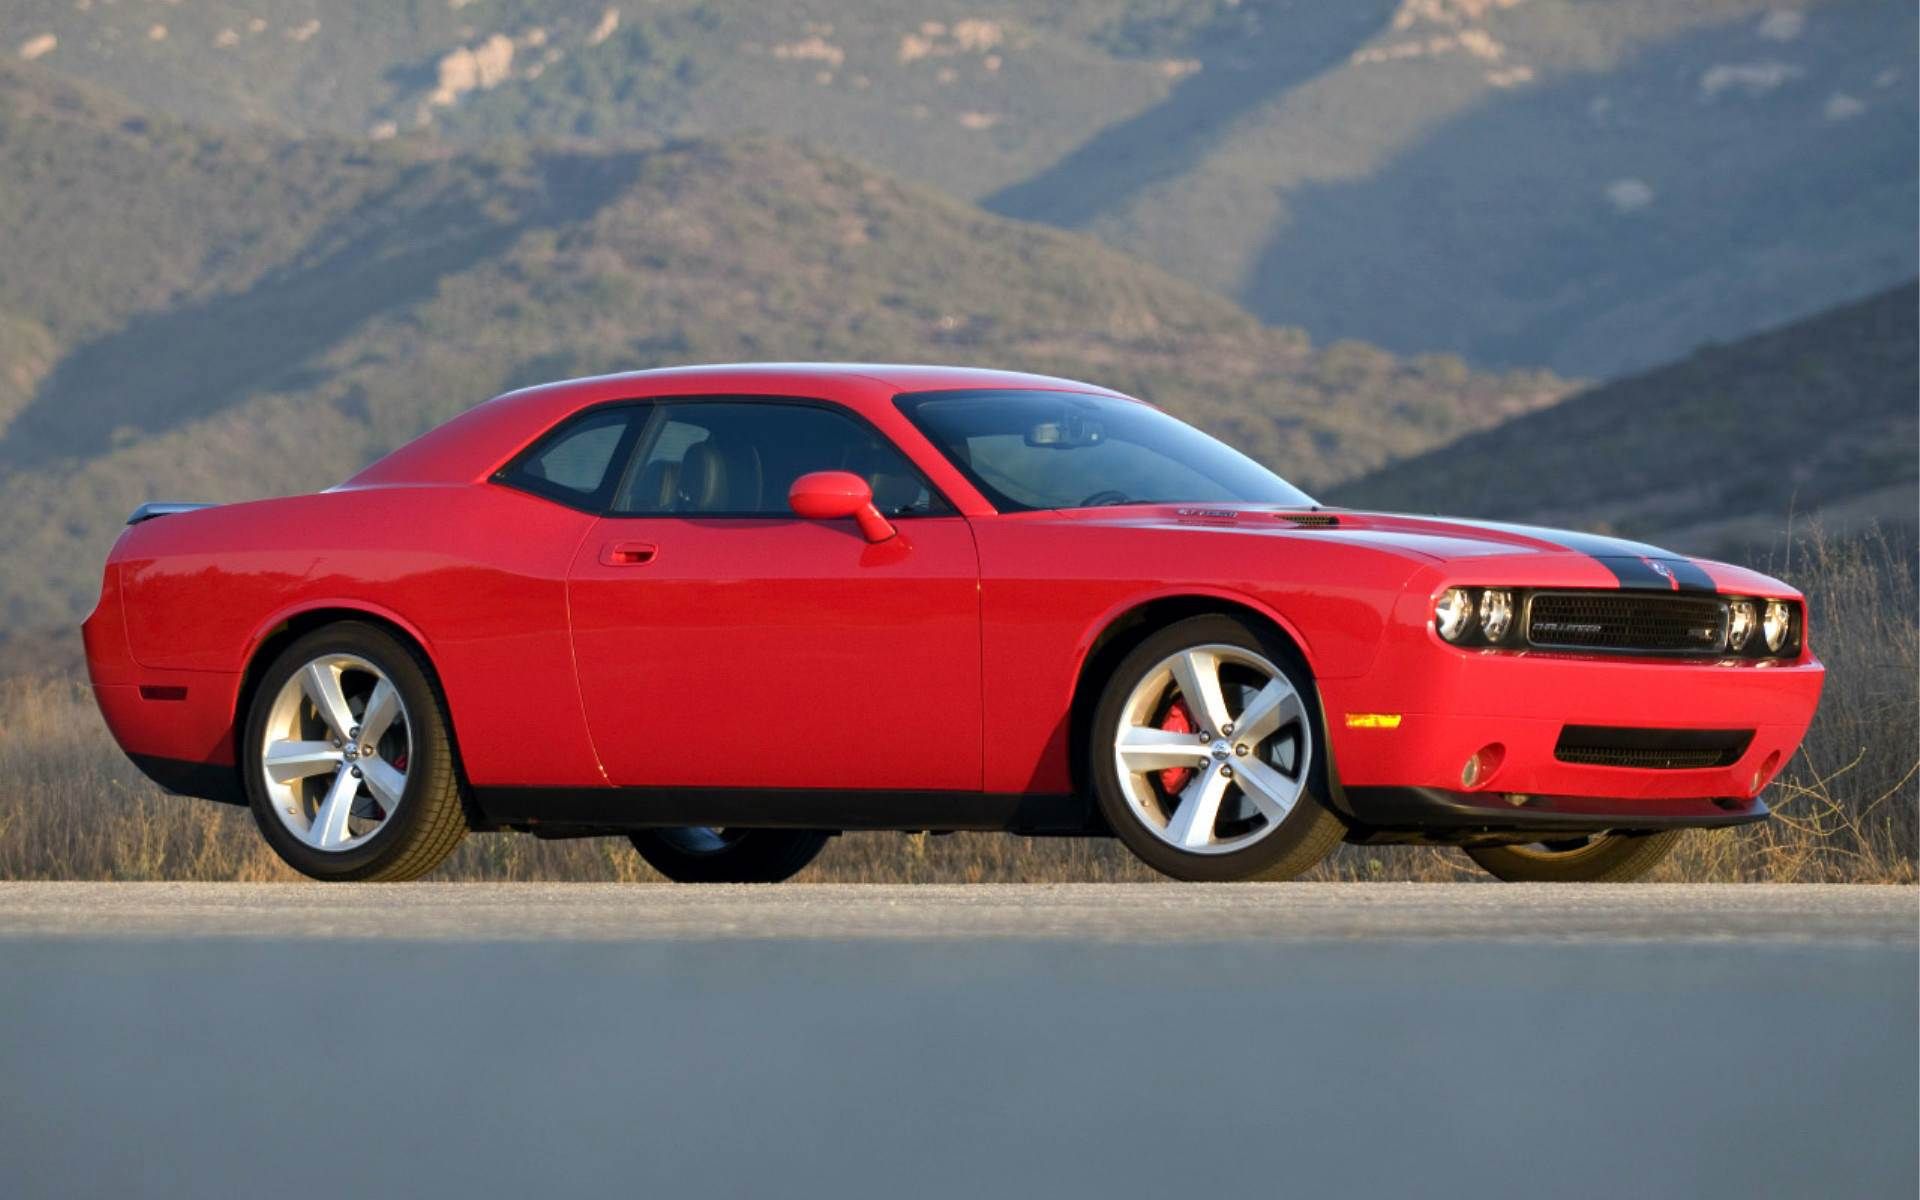 Dodge Challenger Wallpapers High Quality Wallpapers 1920x1200